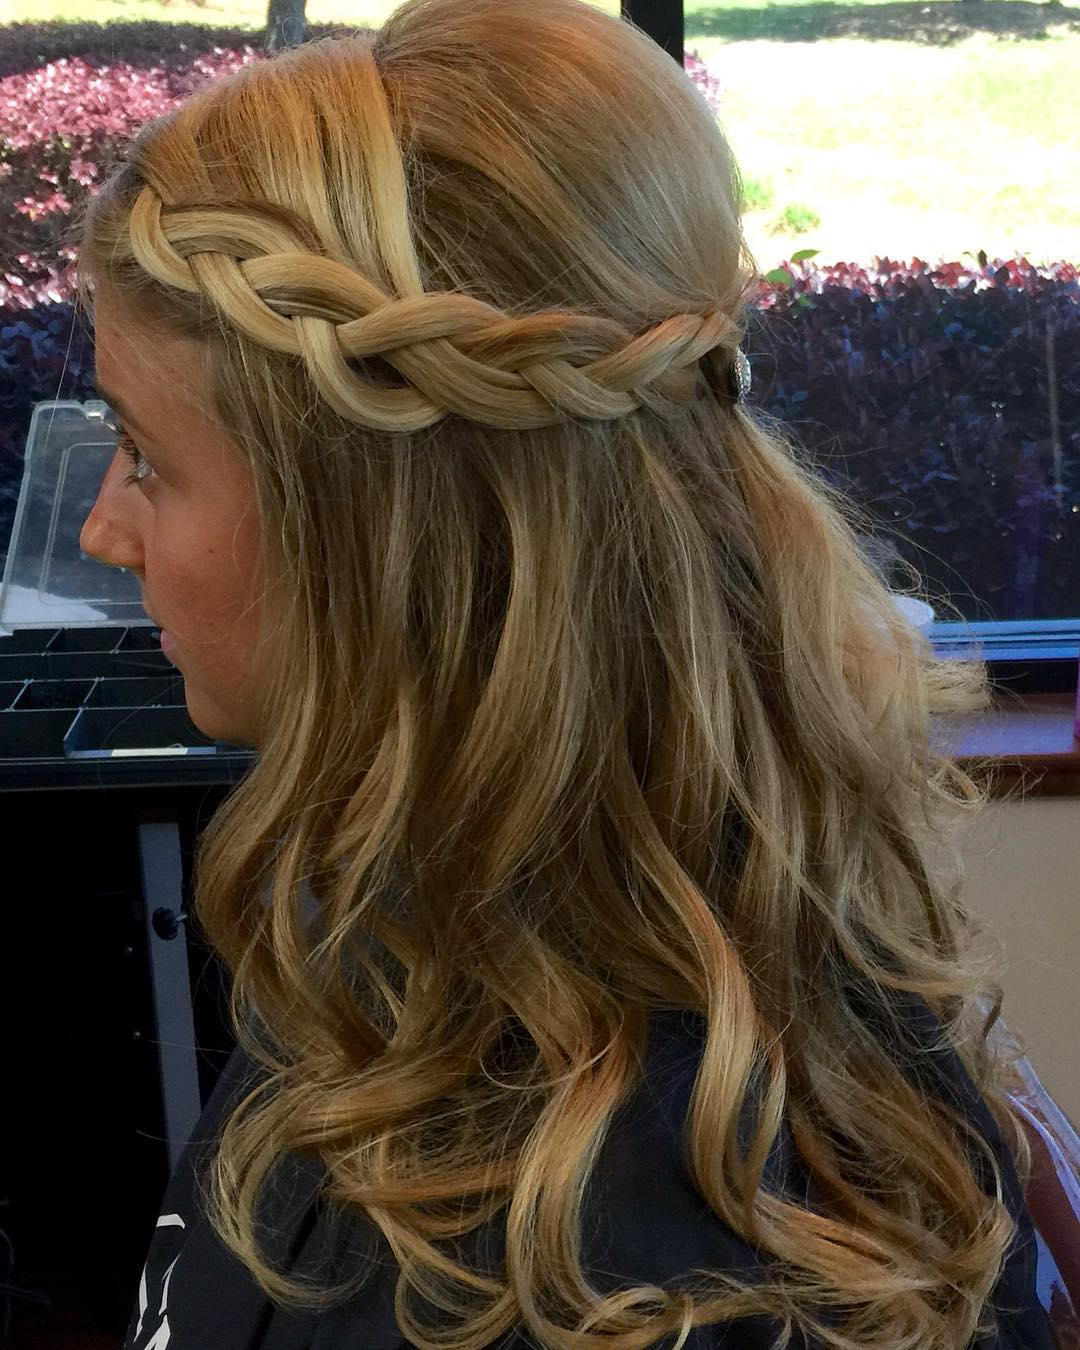 Prom Hairstyles for Girls